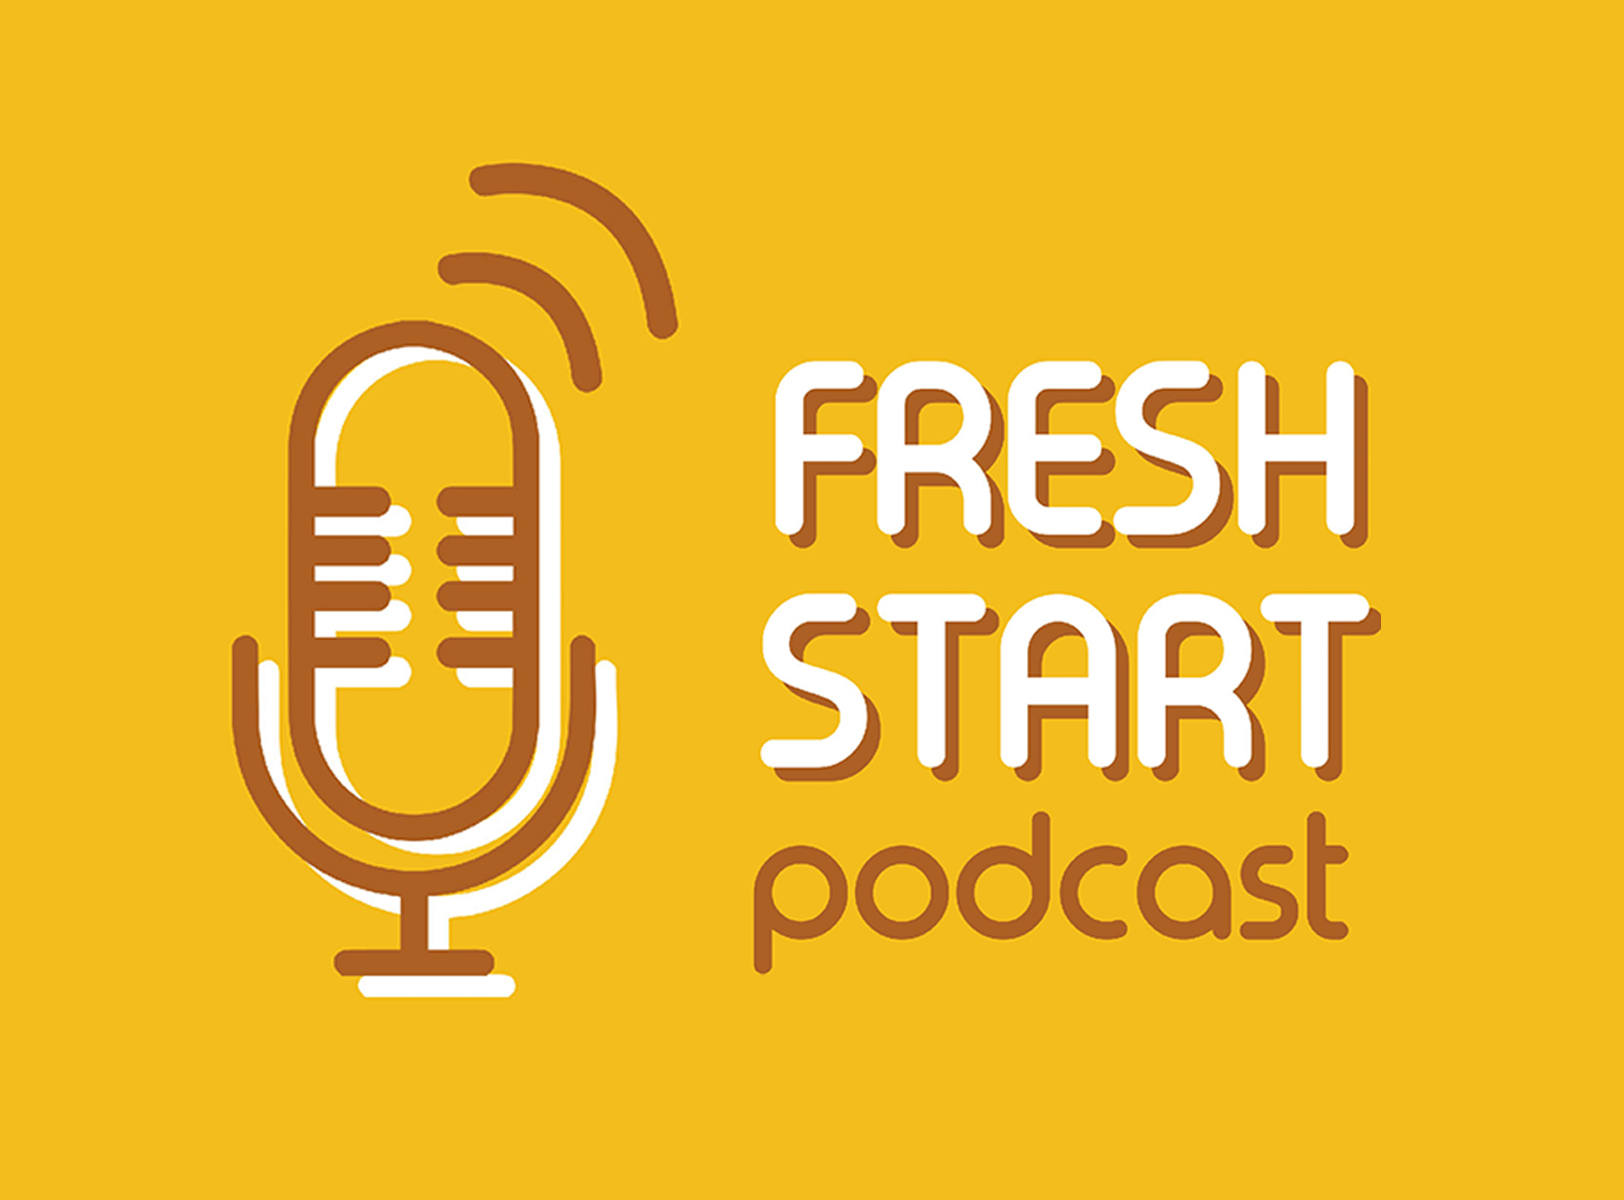 Fresh Start: Podcast News (1/8/2020 Wed.)